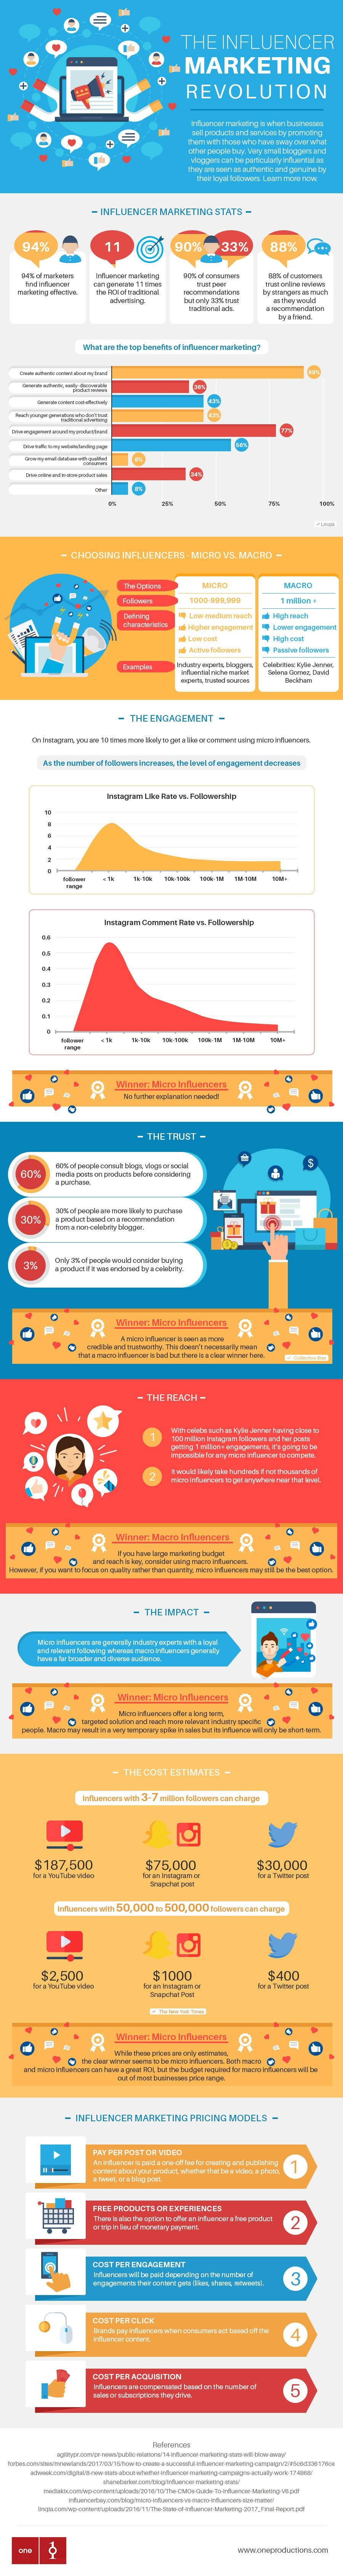 The Influencer Marketing Revolution [Infographic]